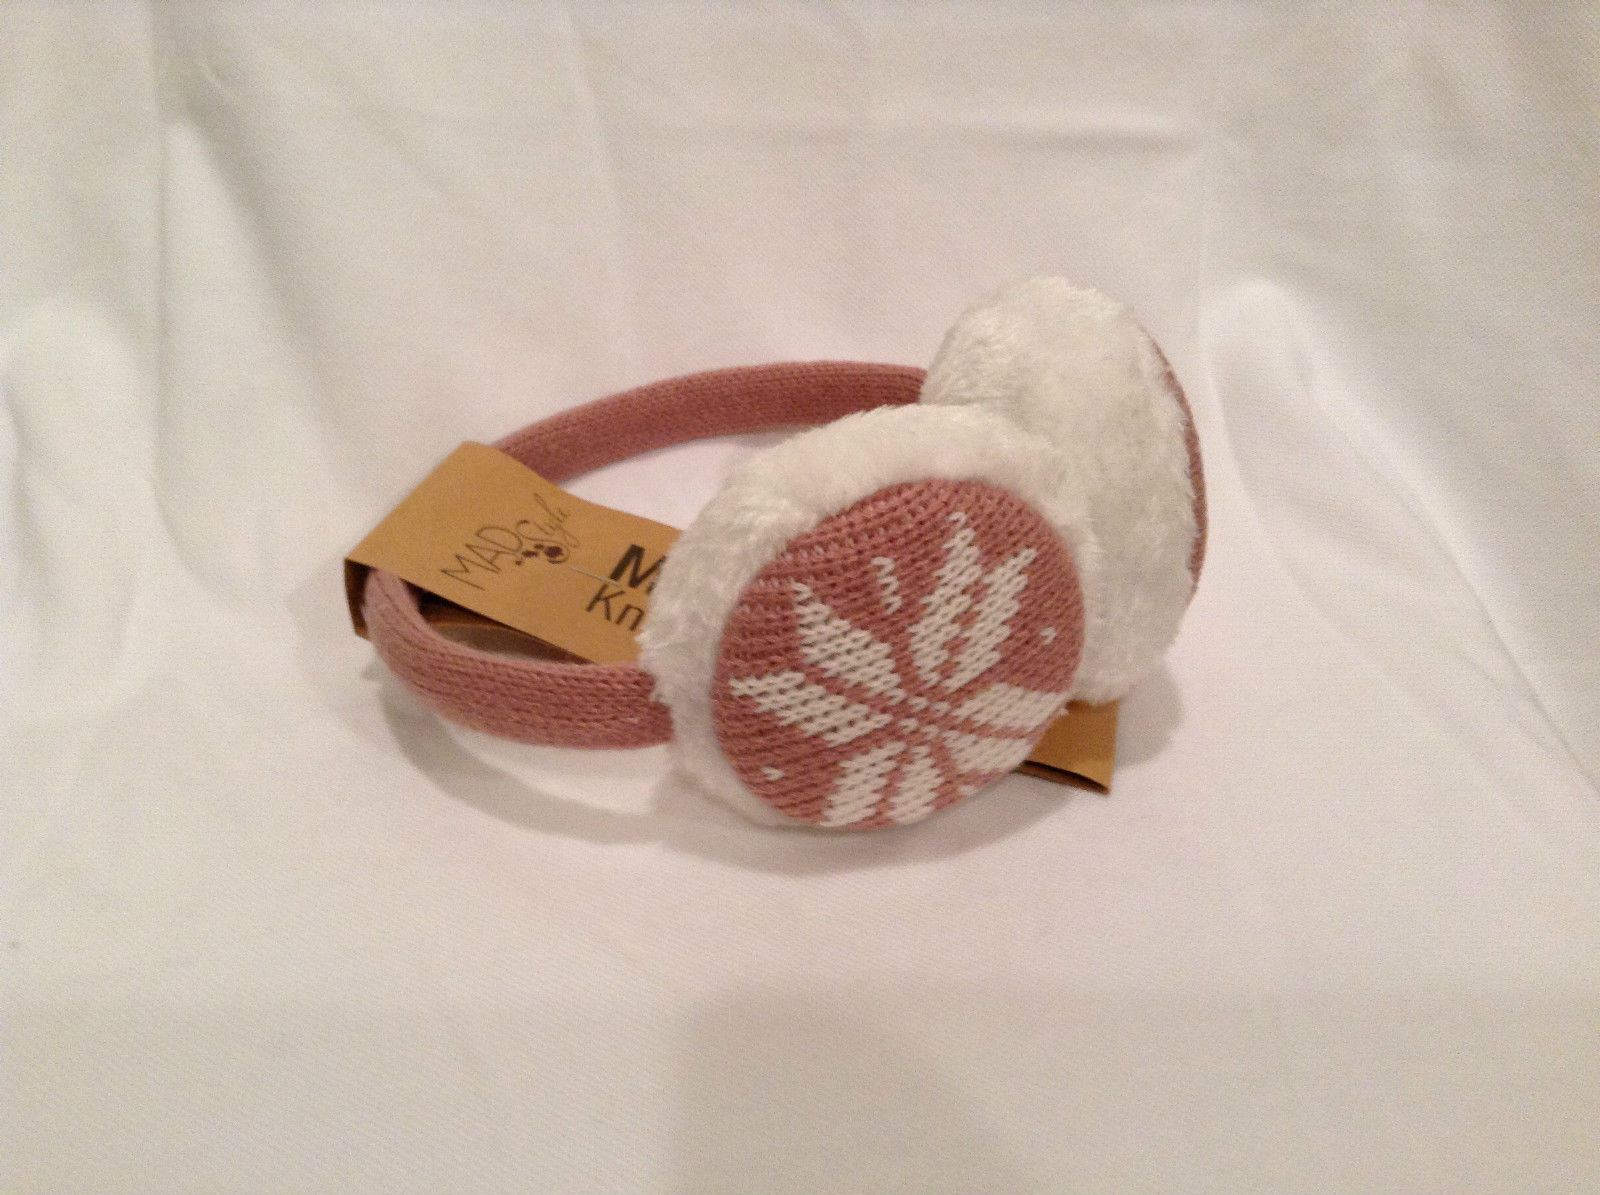 NEW Pink White Ear Muffs Warmers Knit Faux Fur Inside Snowflake Design One Size